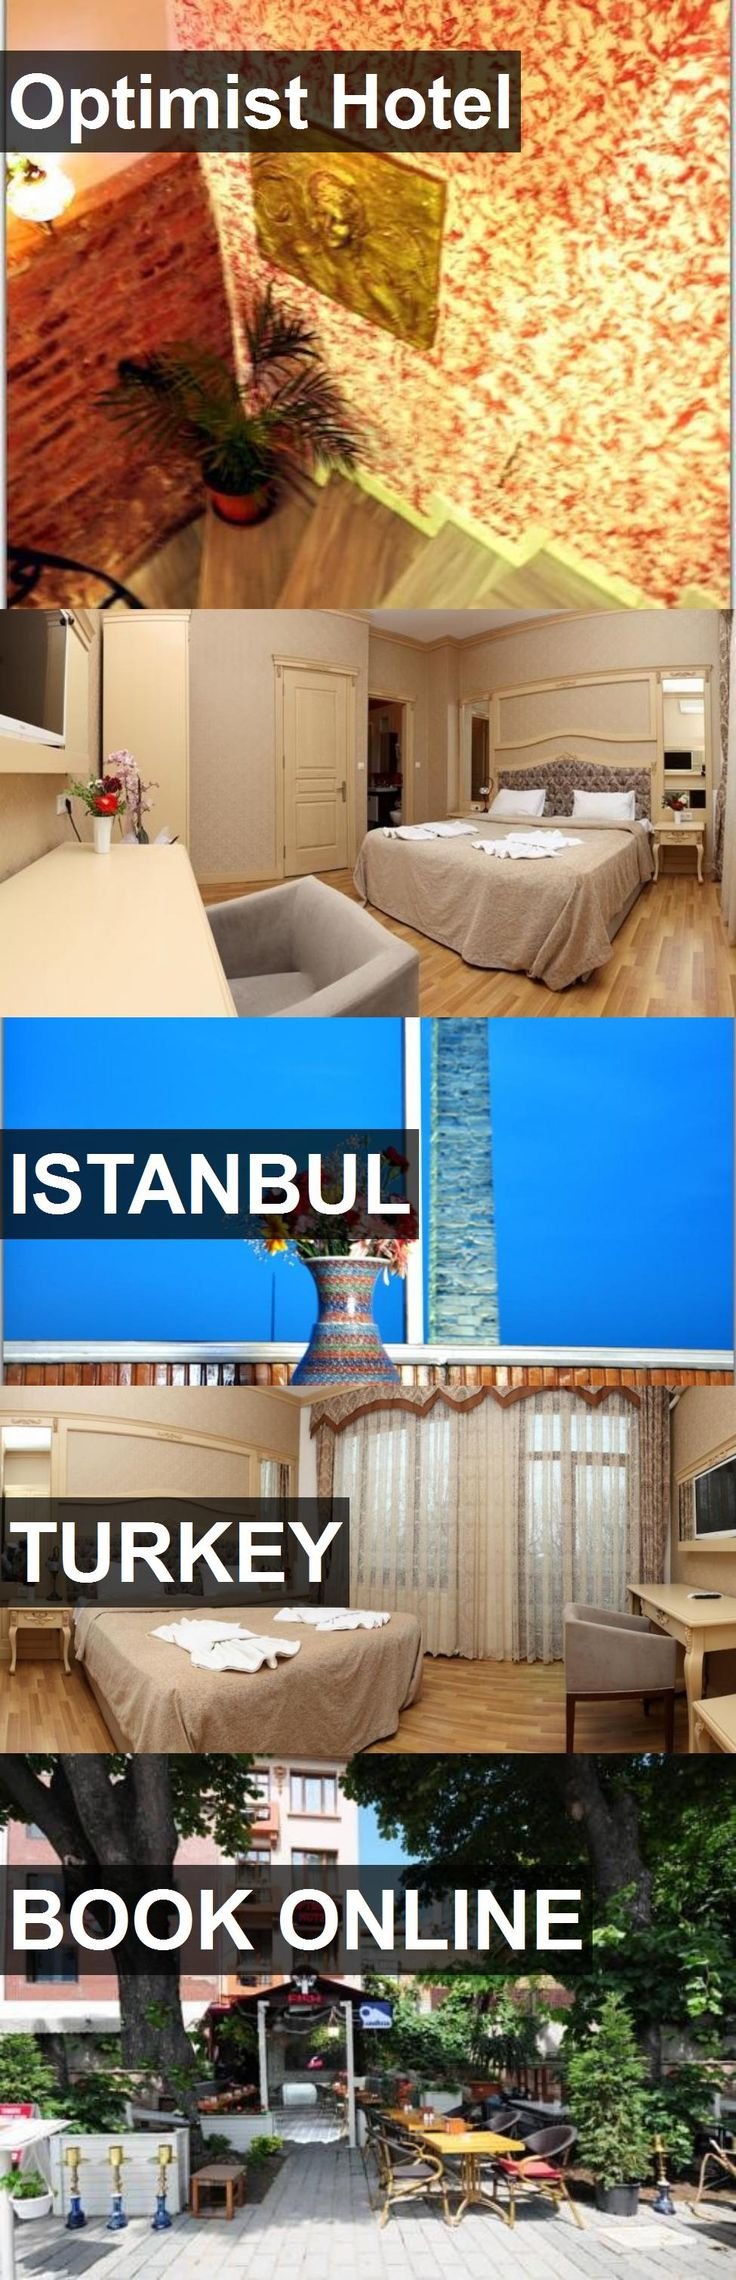 Optimist Hotel in Istanbul, Turkey. For more information, photos, reviews and best prices please follow the link. #Turkey #Istanbul #travel #vacation #hotel